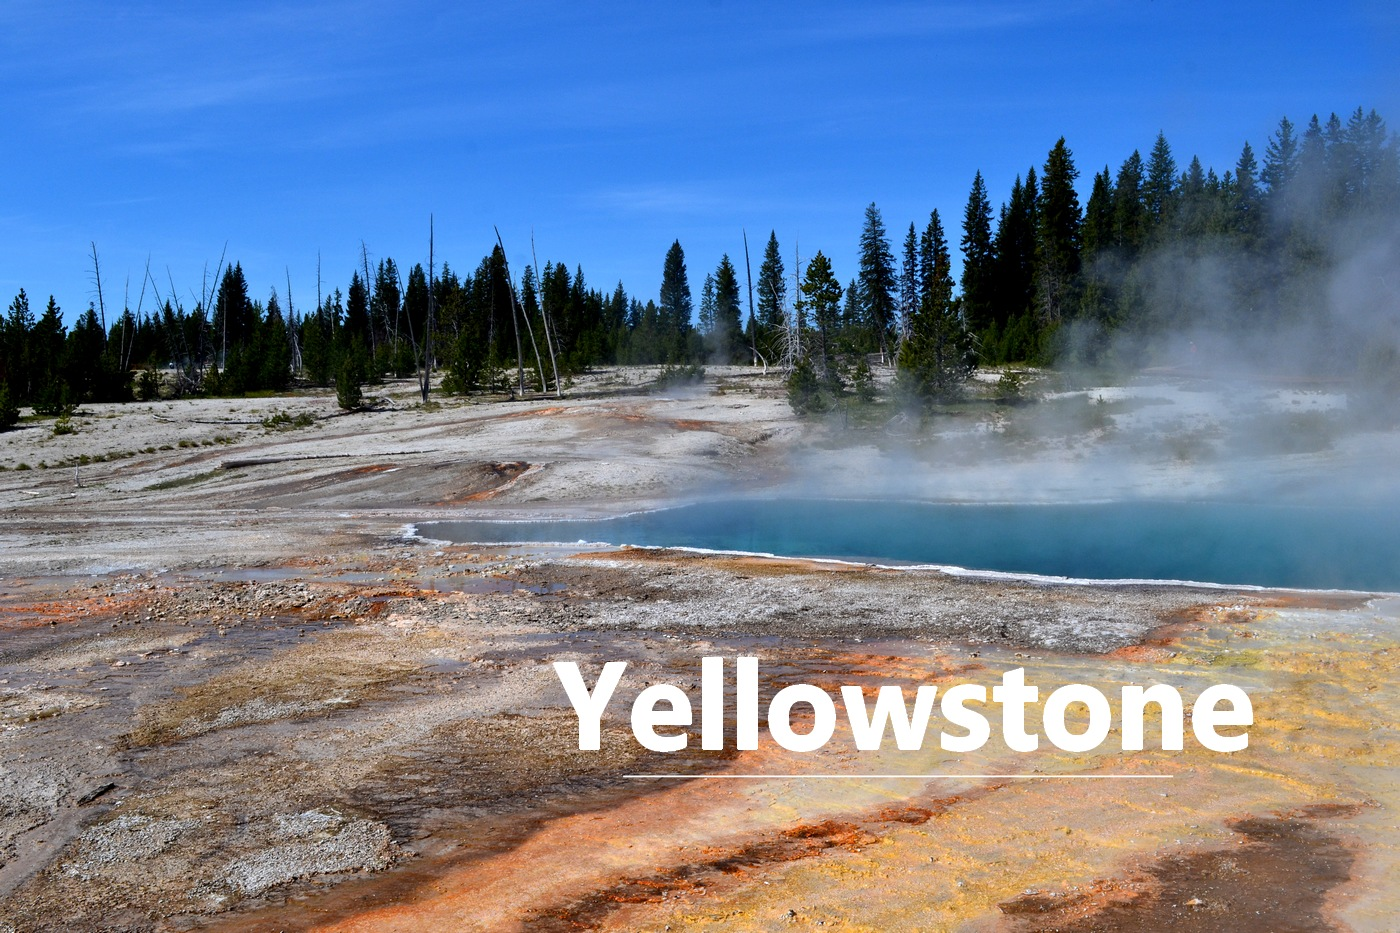 Bassin Yellowstone National Park